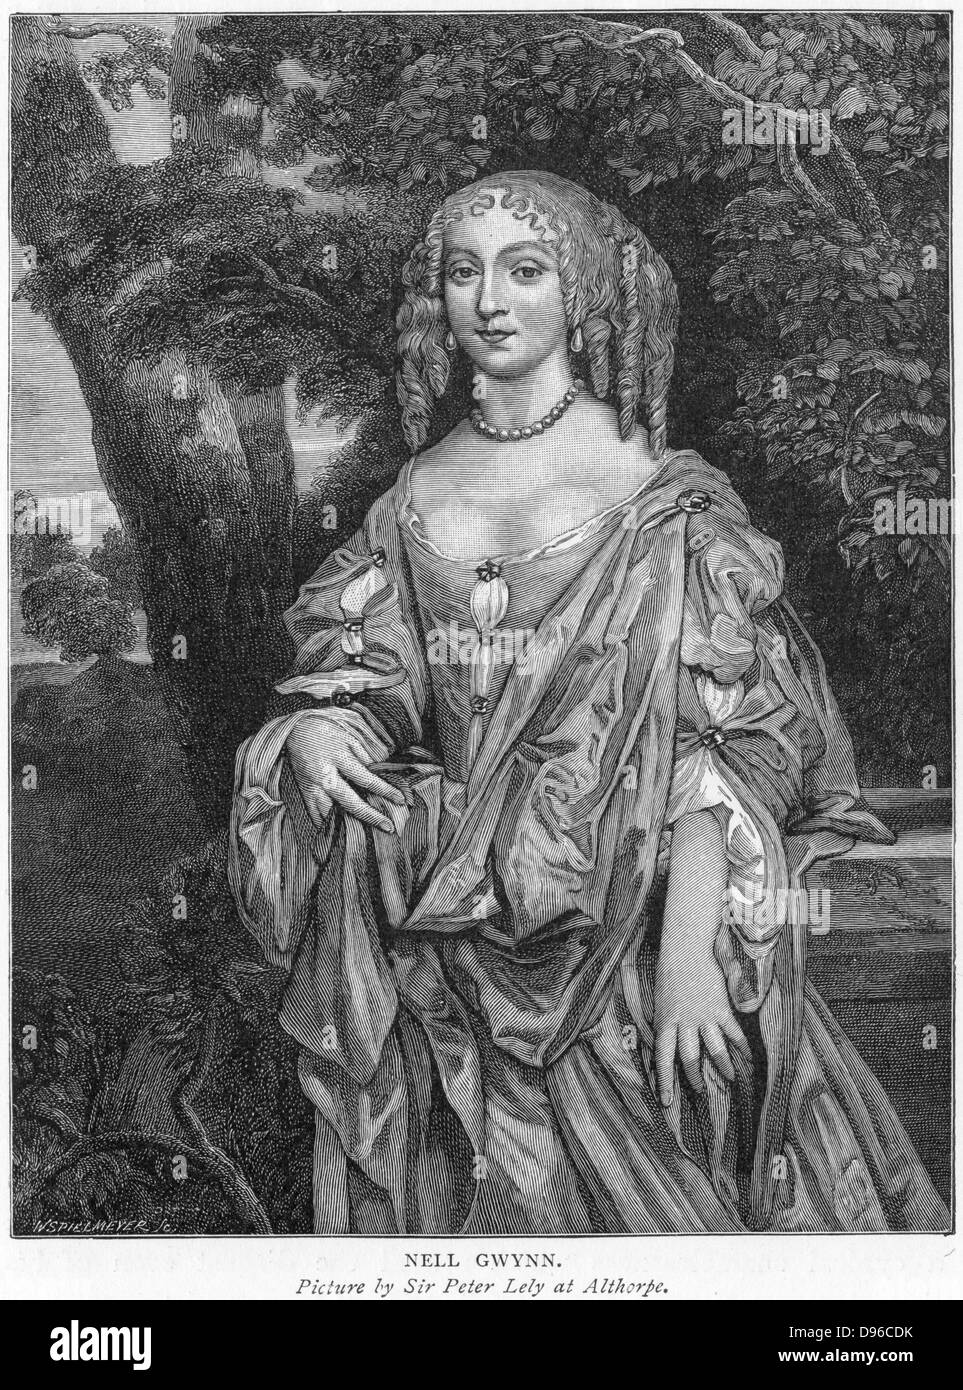 Nell Gwyn (c1650-1687), English comic actress: mistress of Charles II.  Engraving. - Stock Image